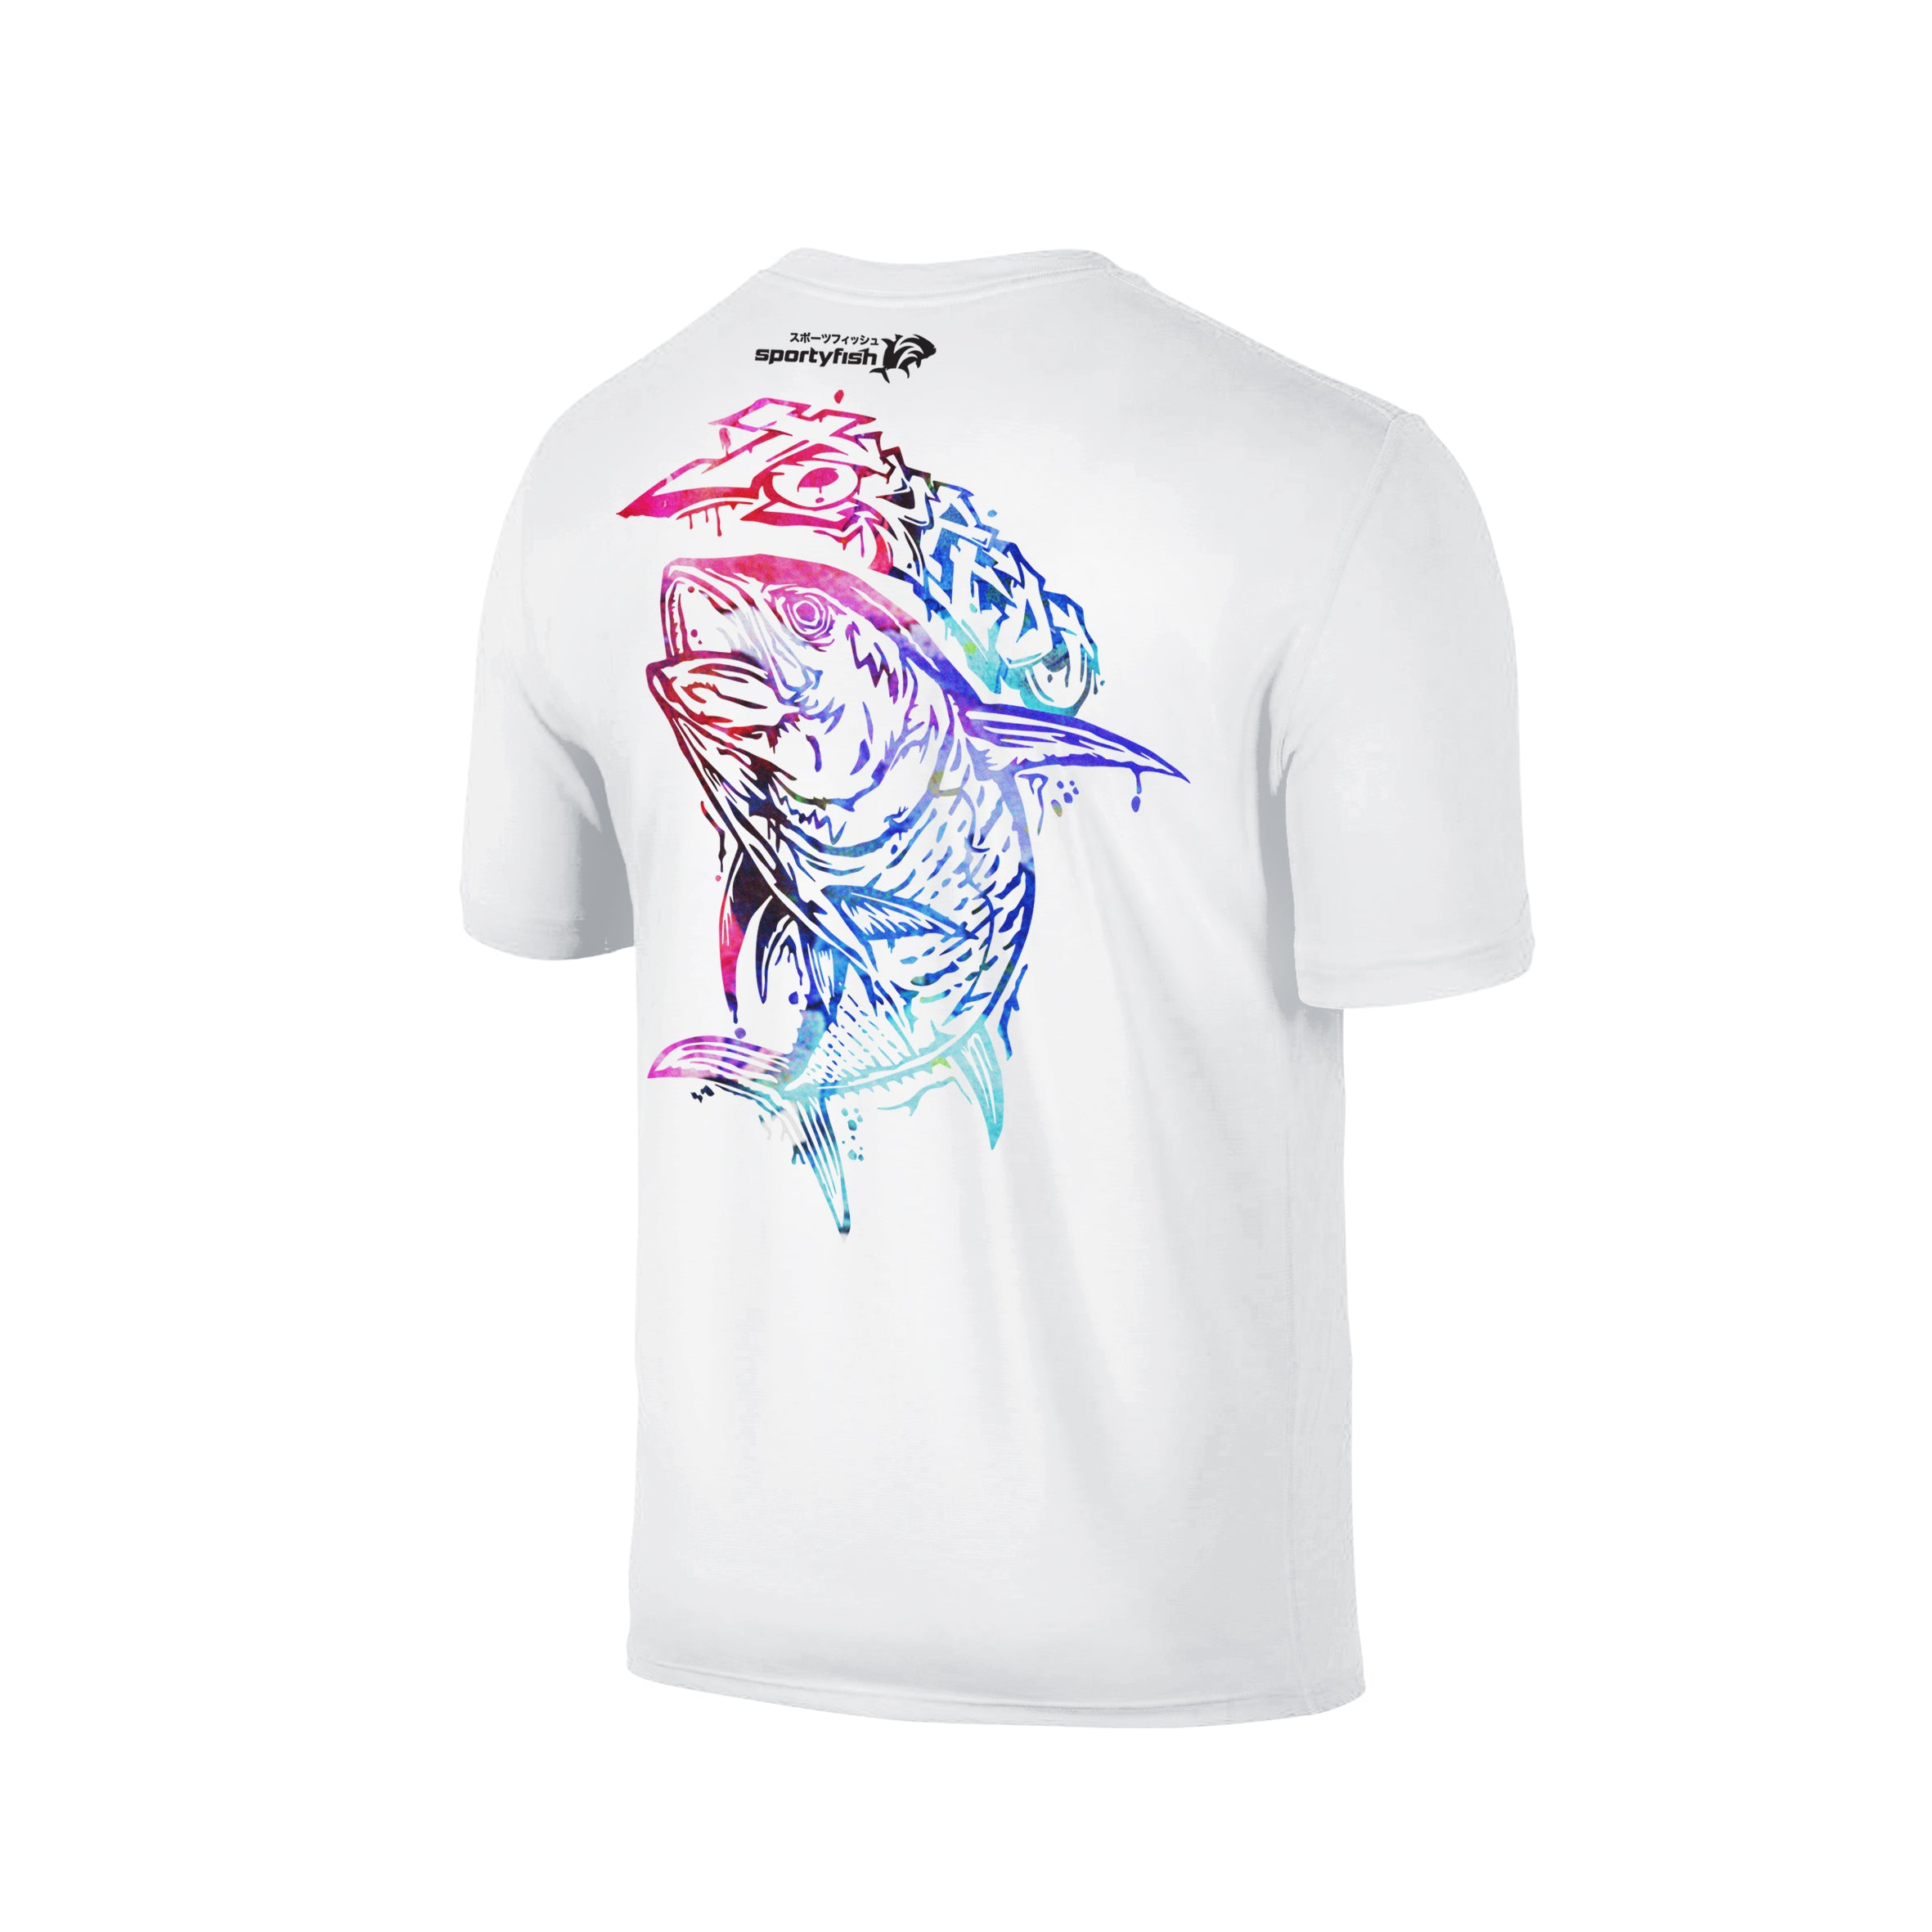 Wildstyle Graffiti Series White T-shirt(back view)Paint Splatter: Yellowfin Tuna